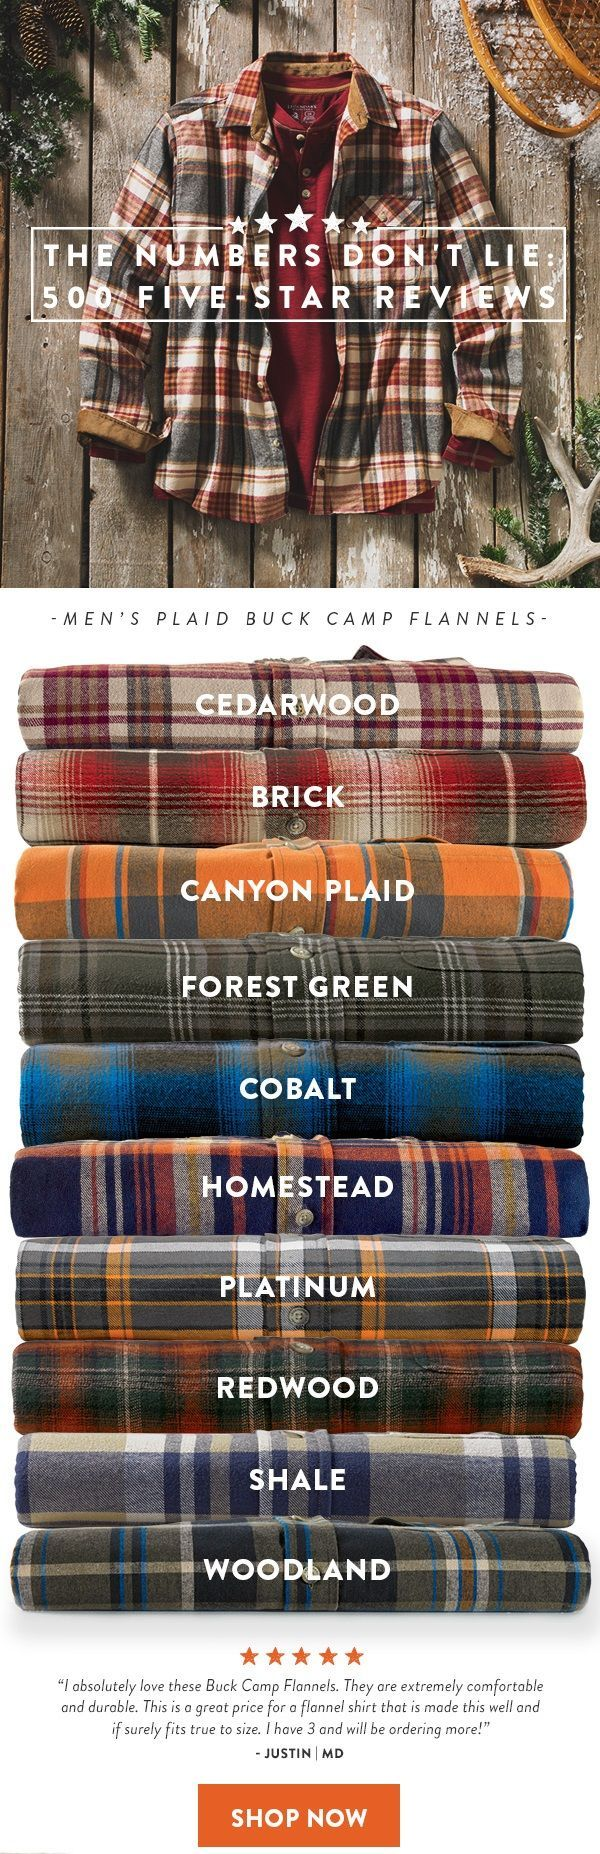 Men's Plaid Buck Camp Flannels http://www.99wtf.net/men/mens-fasion/dressing-styles-girls-love-guys-shirt-included/